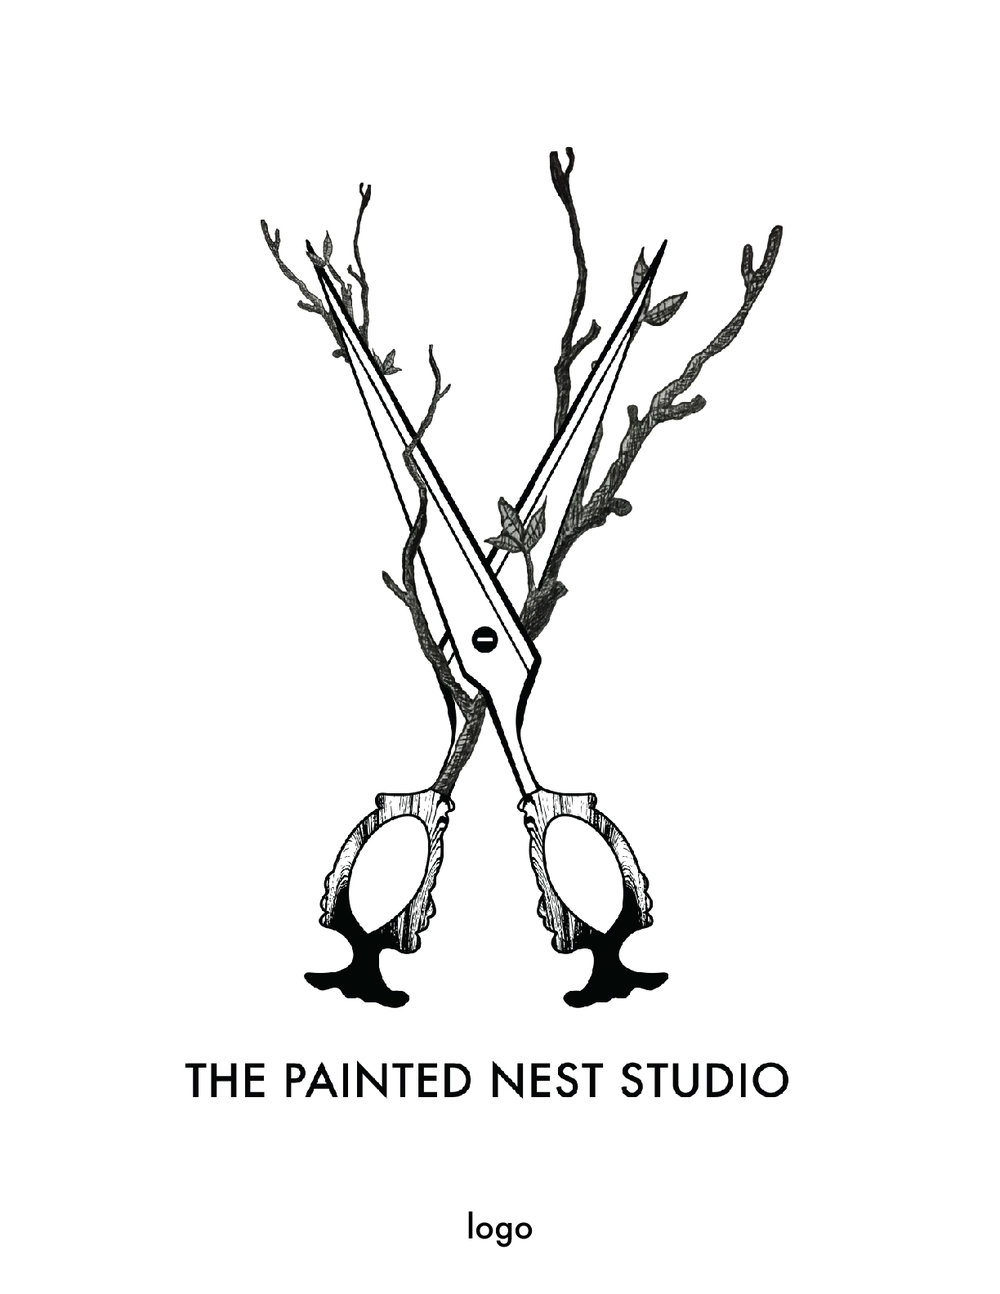 the painted nest studio logo